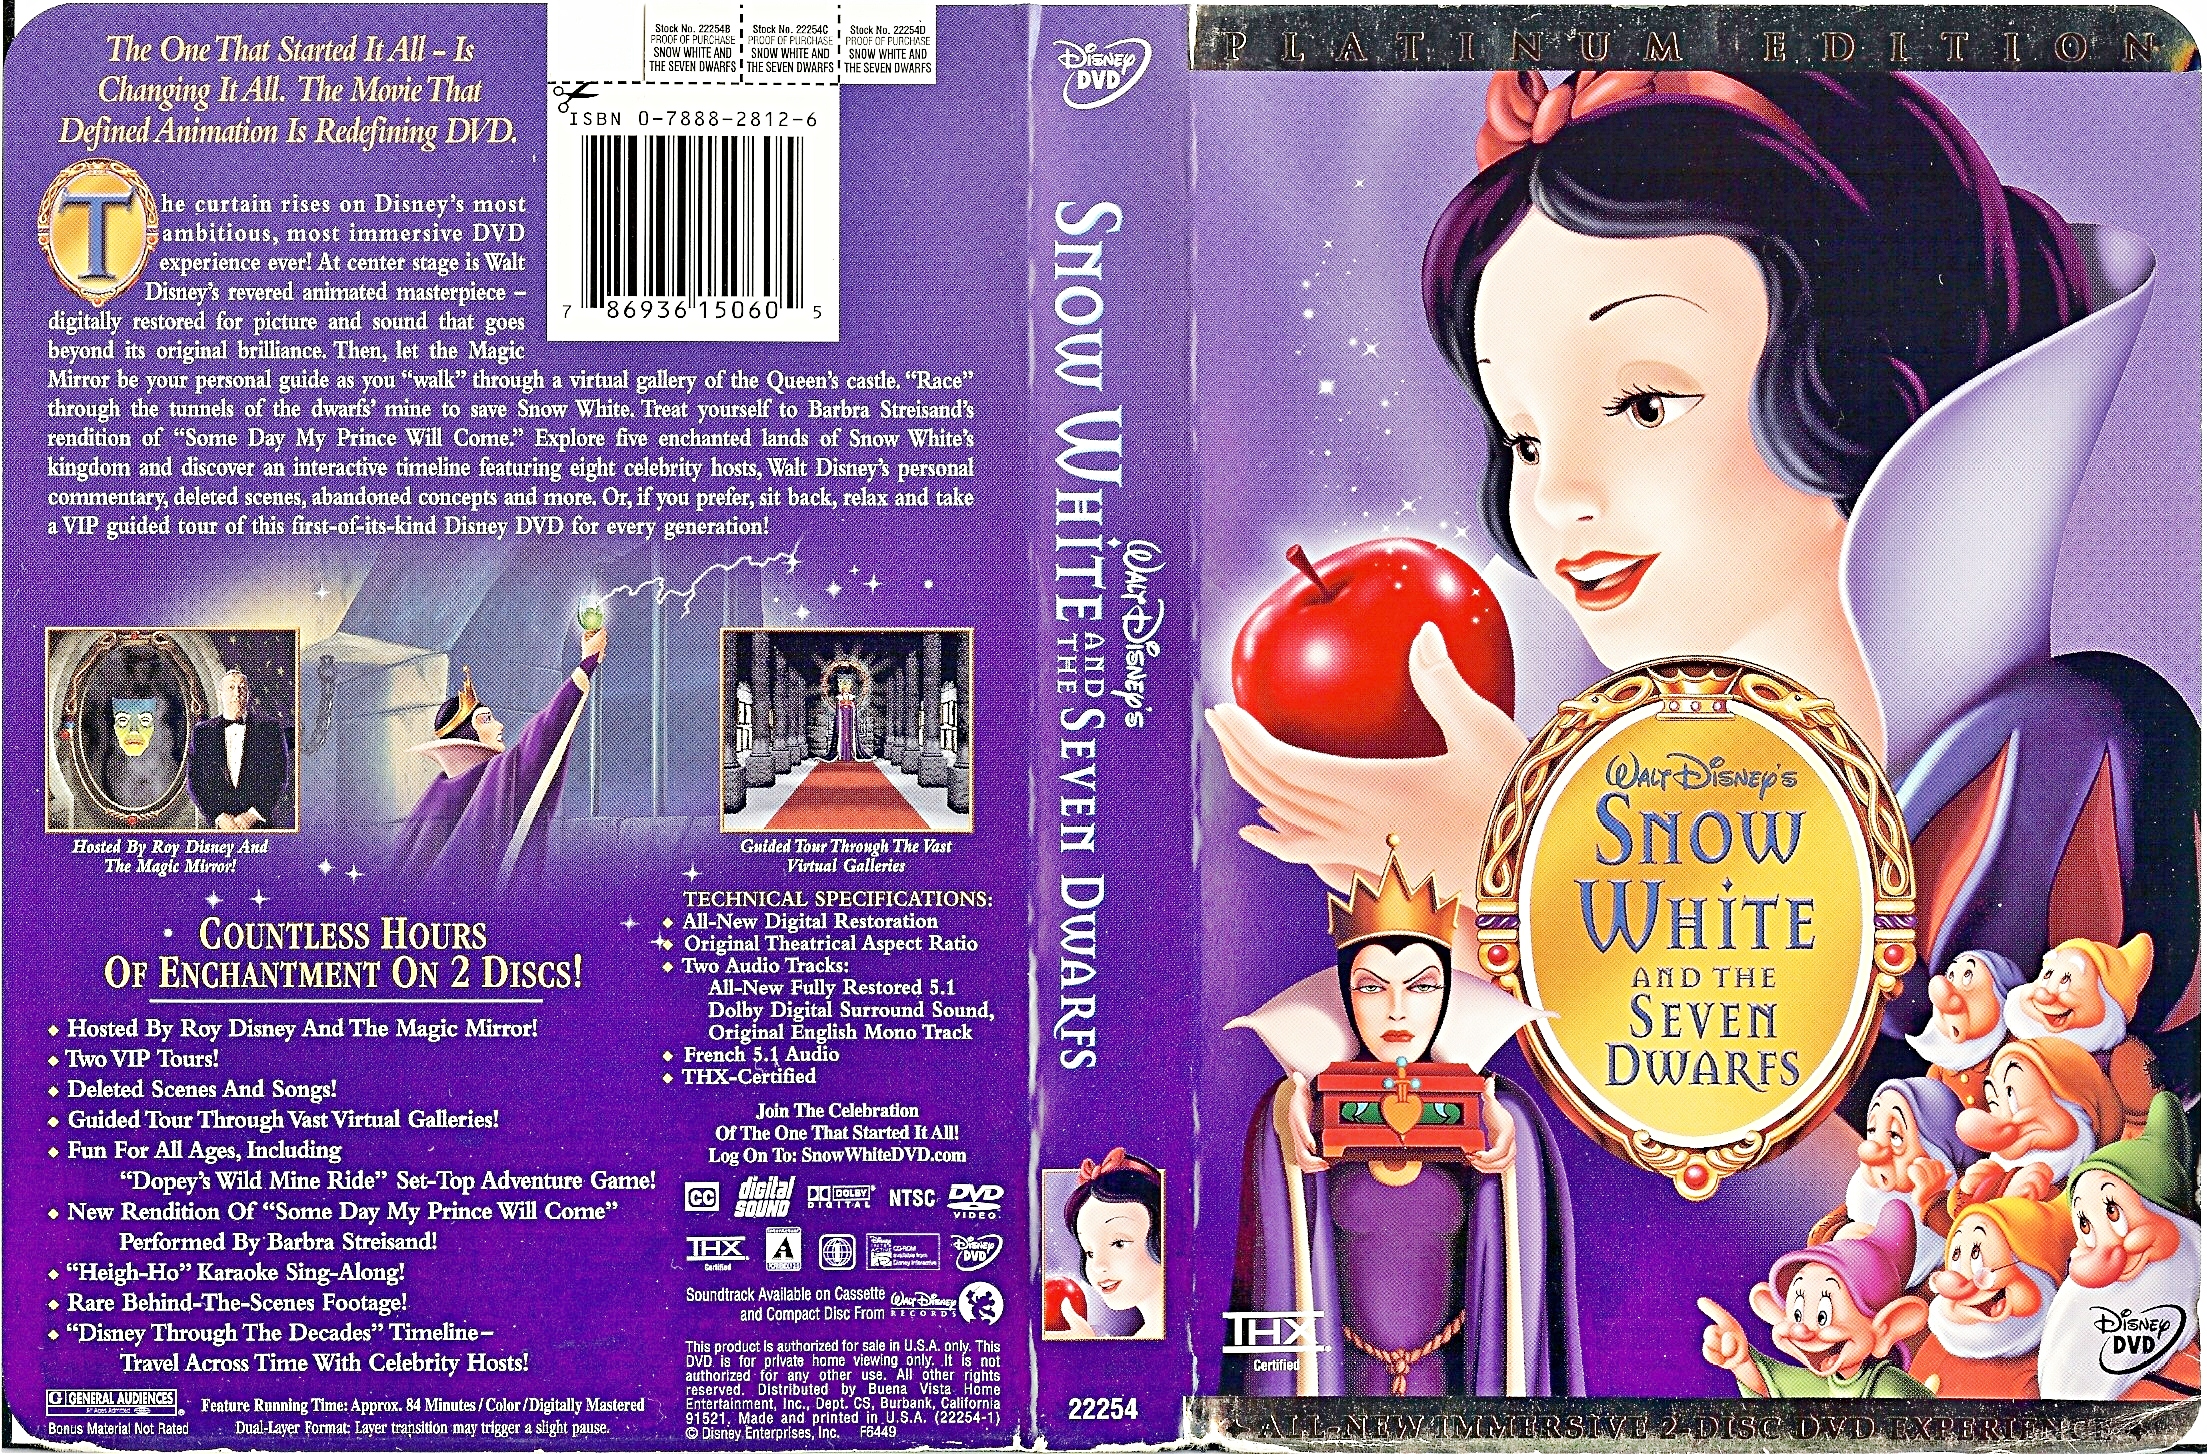 Walt ディズニー DVD Covers - Snow White and the Seven Dwarfs: Platinum Edition